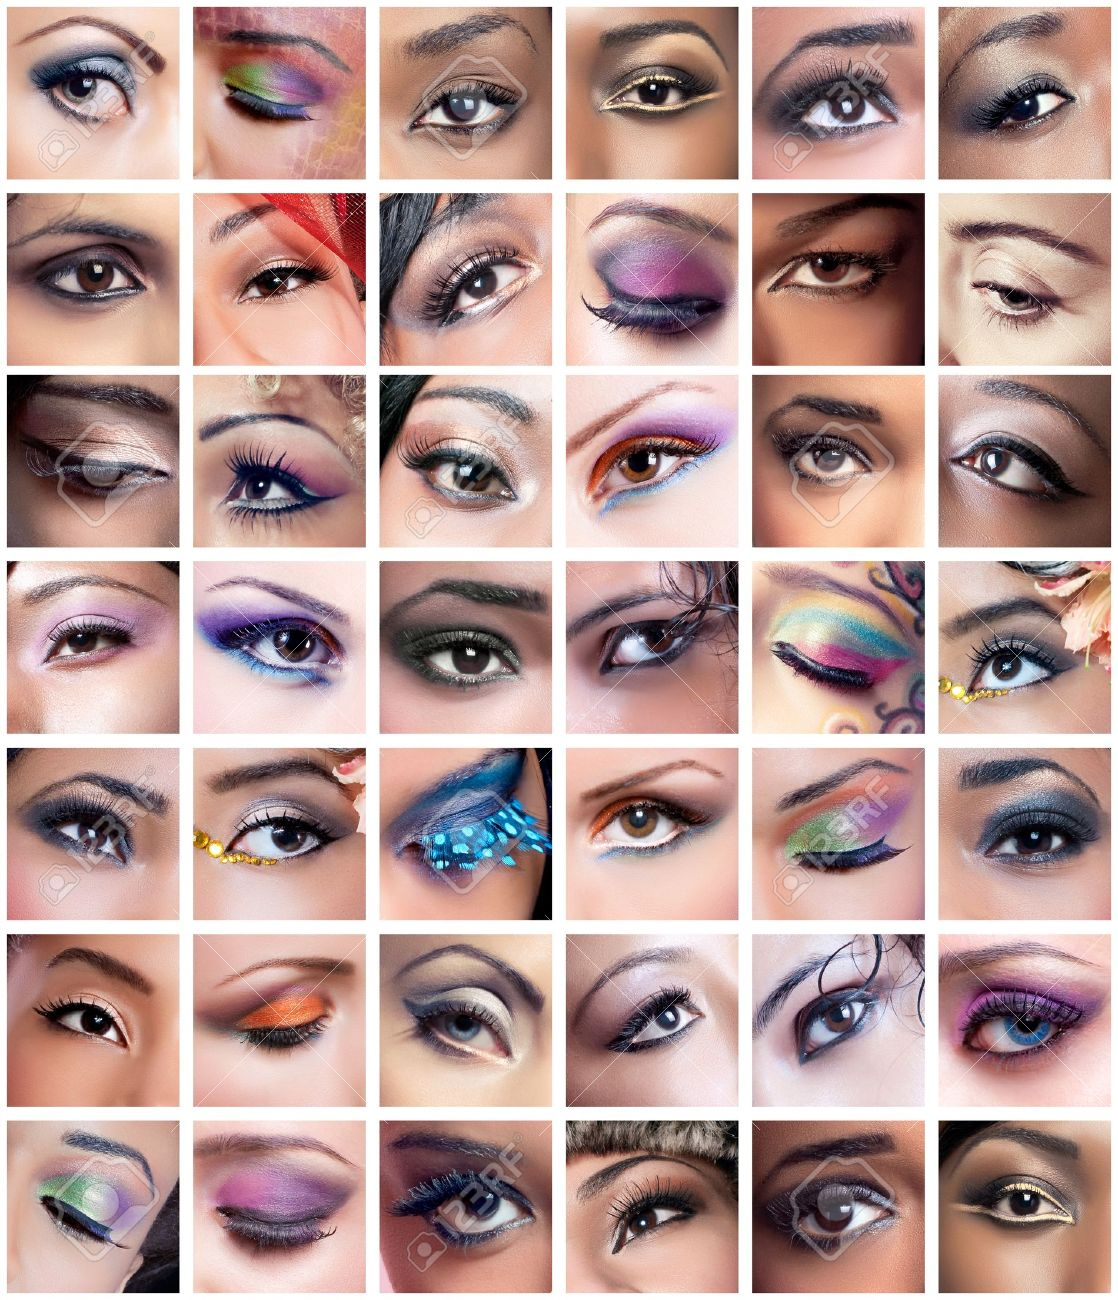 Collage of 42 eyes closeup images of women of different ethnicities (african, asian/indian, caucasian) with creative colorful makeups Stock Photo - 8849305